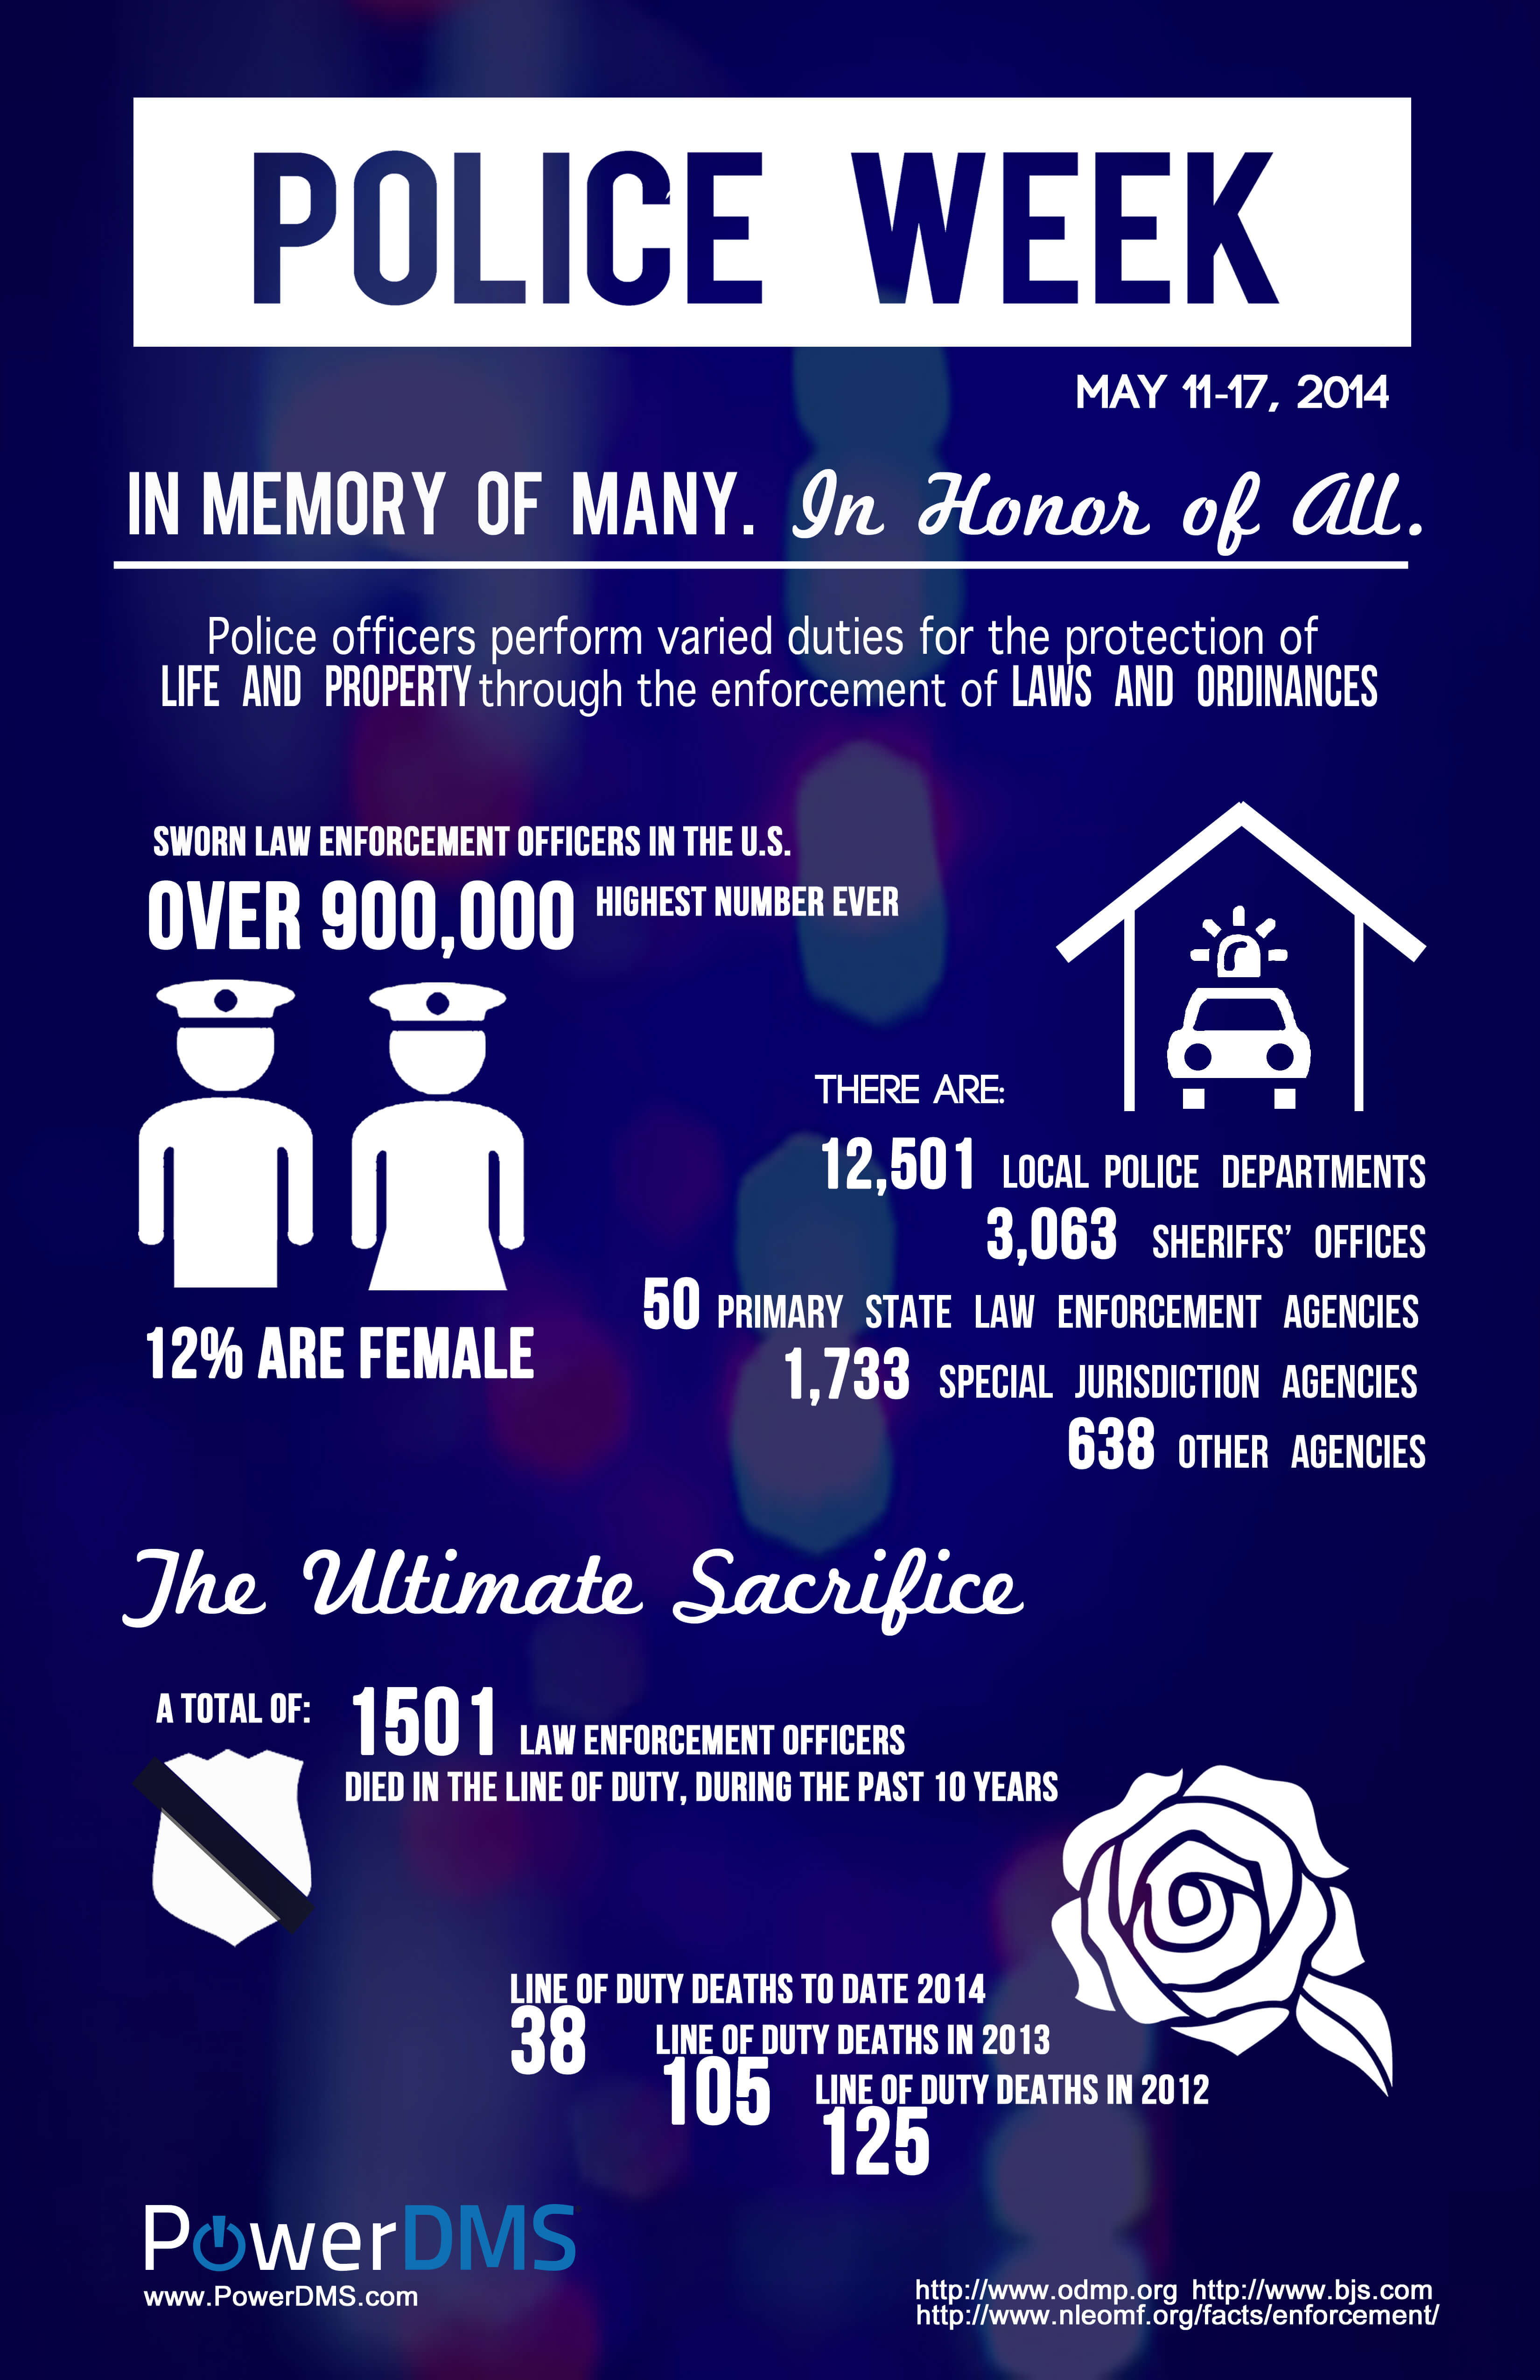 Police week infographic.